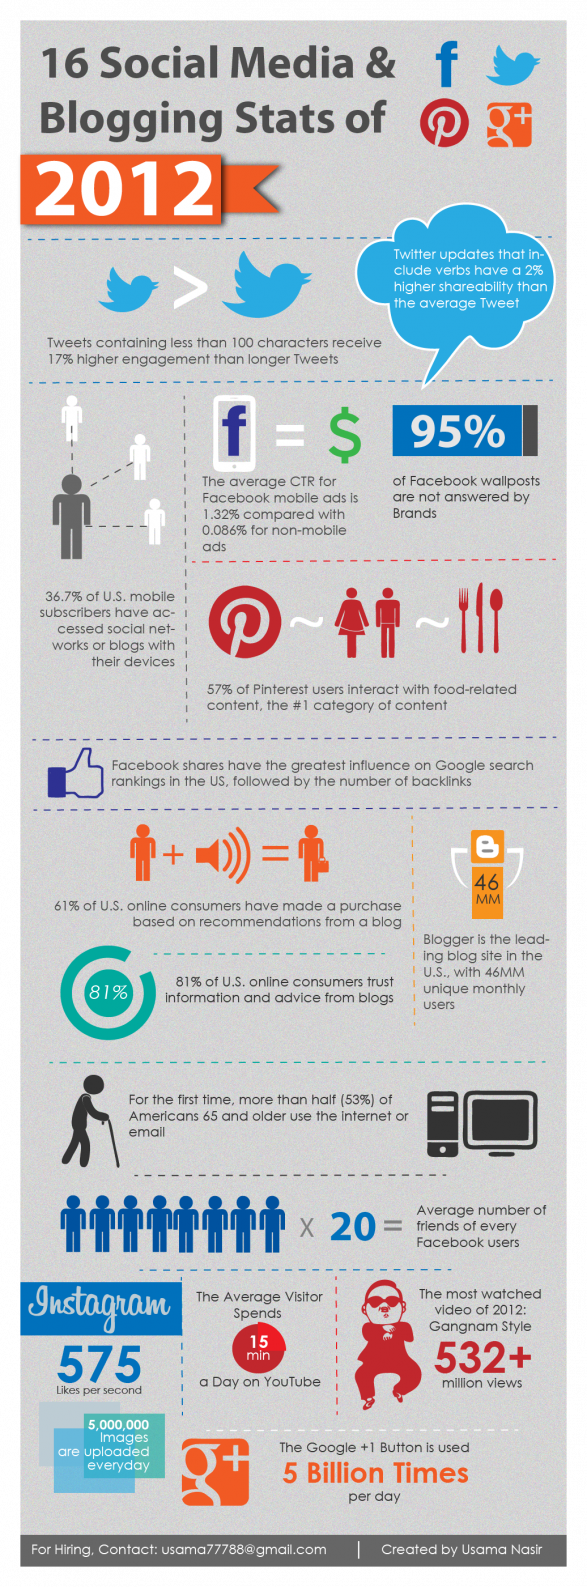 16 Social Media &amp; Blogging Stats of 2012